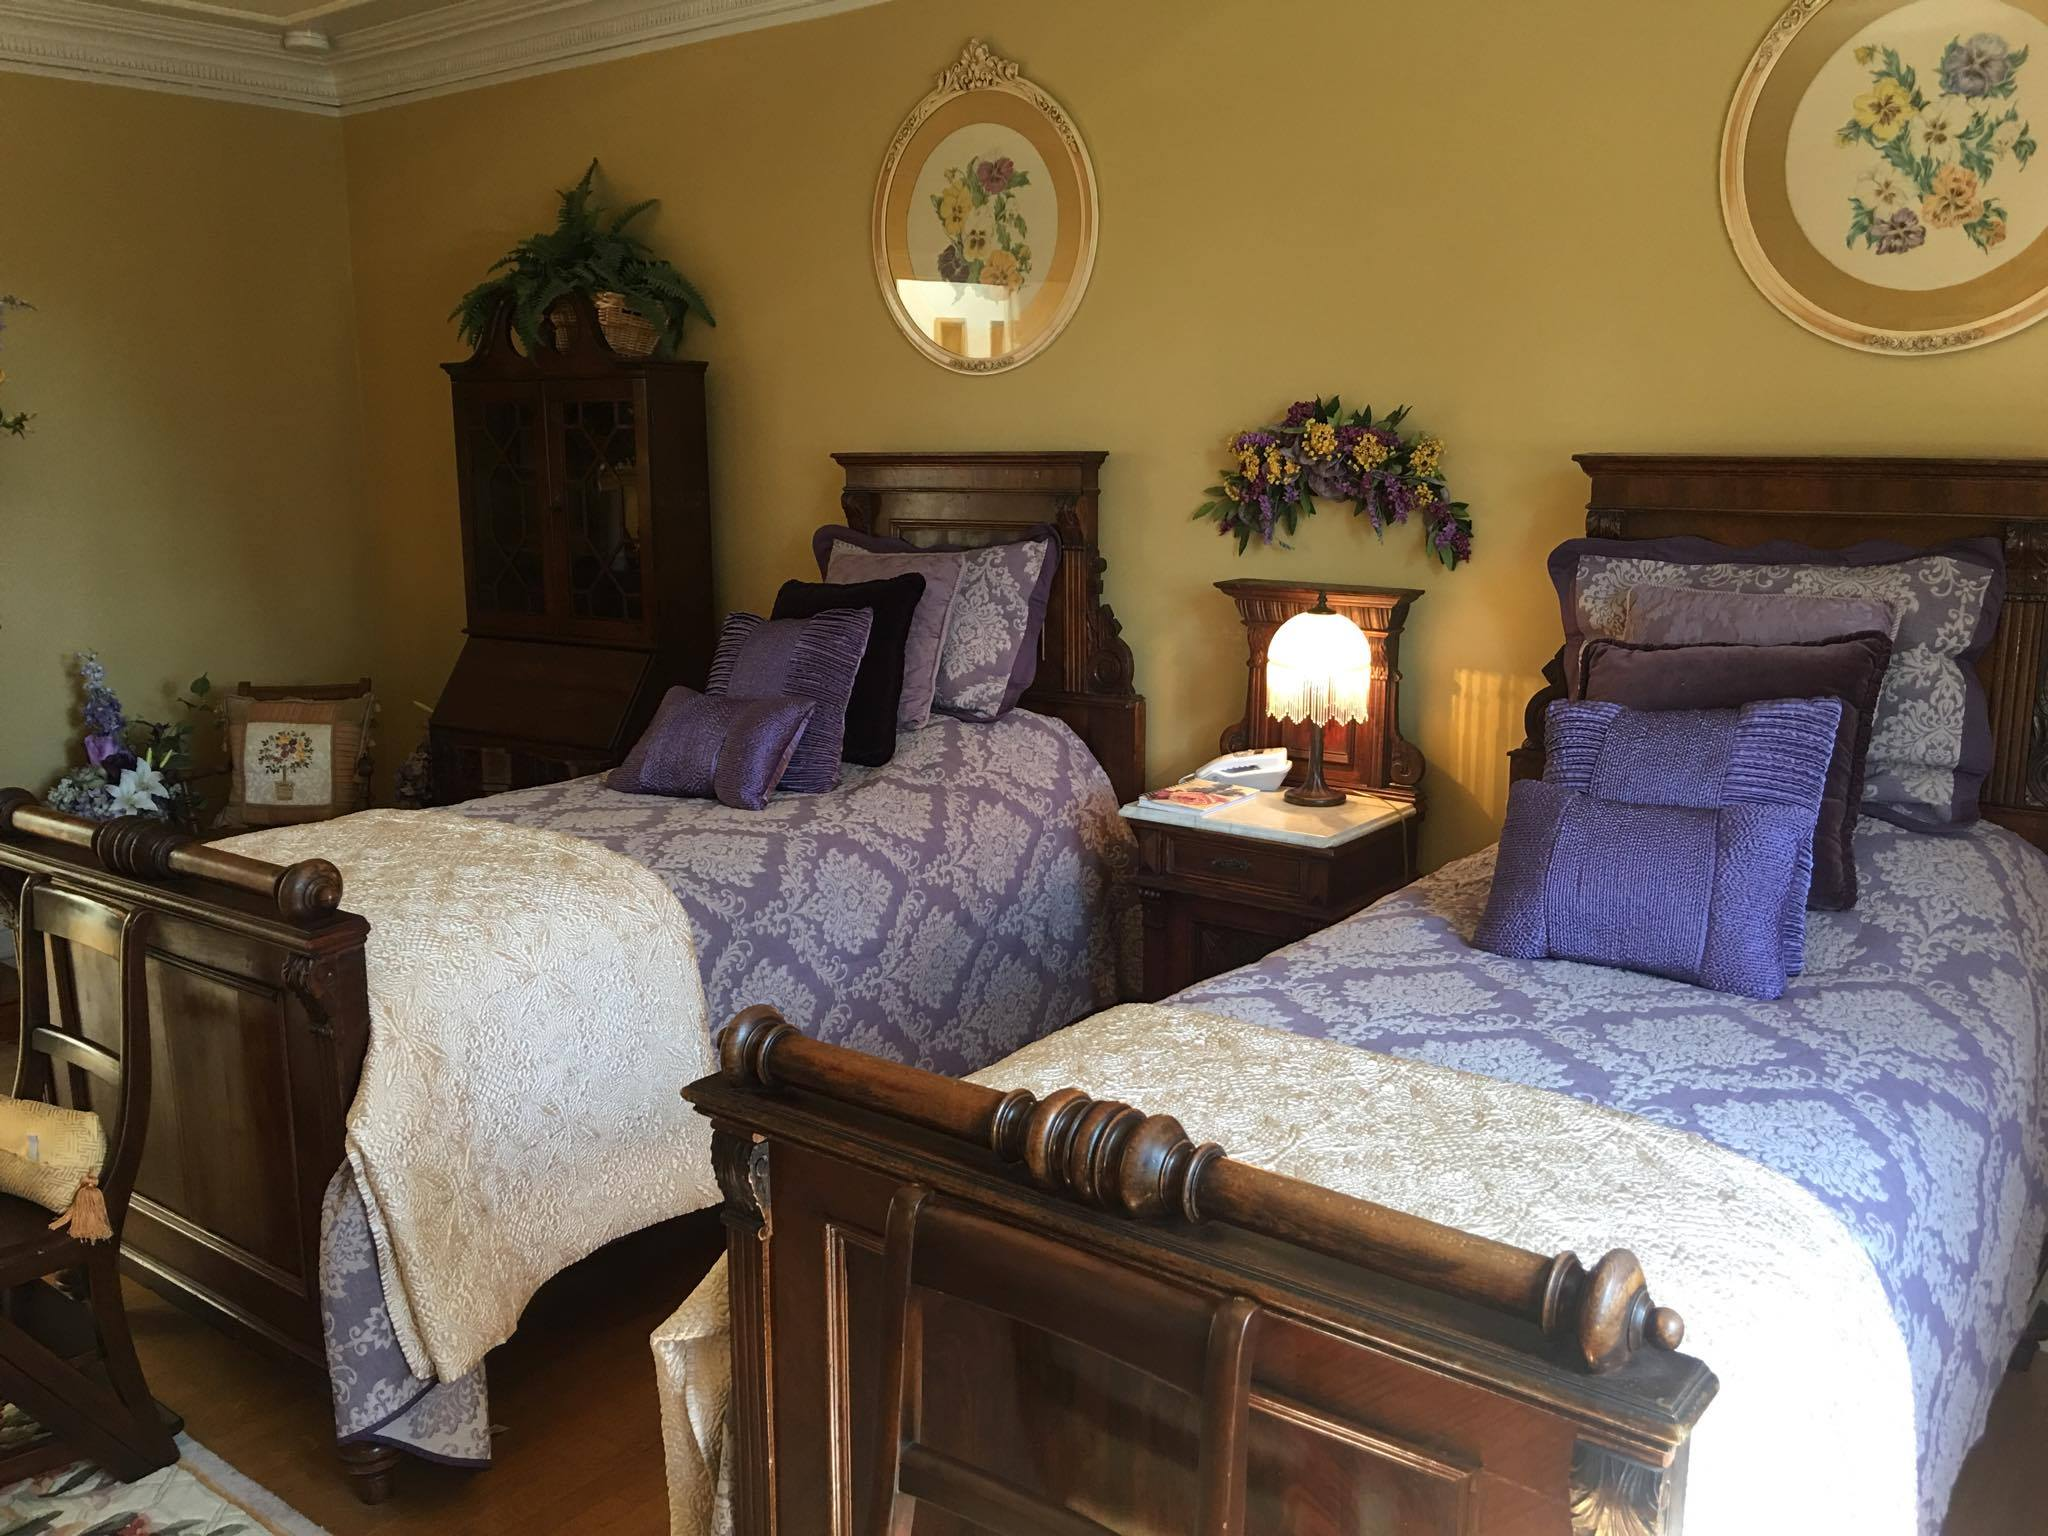 2 Twins - Plush twin French beds, antiques, electric fireplace, detached full bathroom with tub and shower head